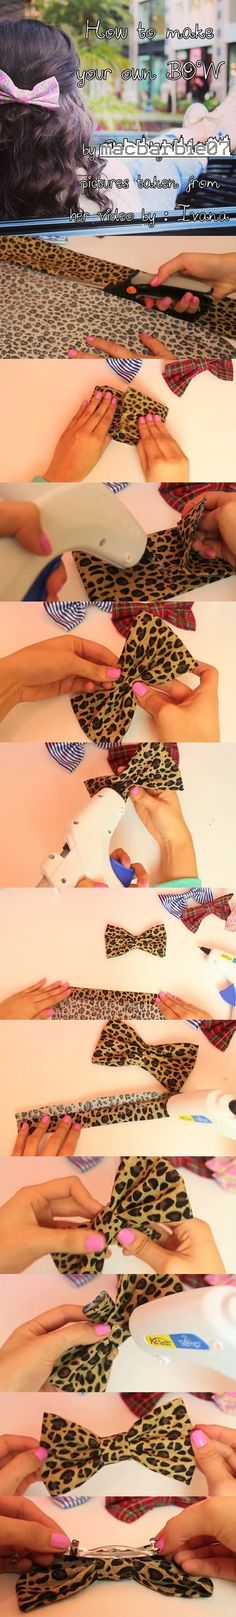 This is by Macbarbie07  I took the pictures from her video so I can make this tutorial for DIY